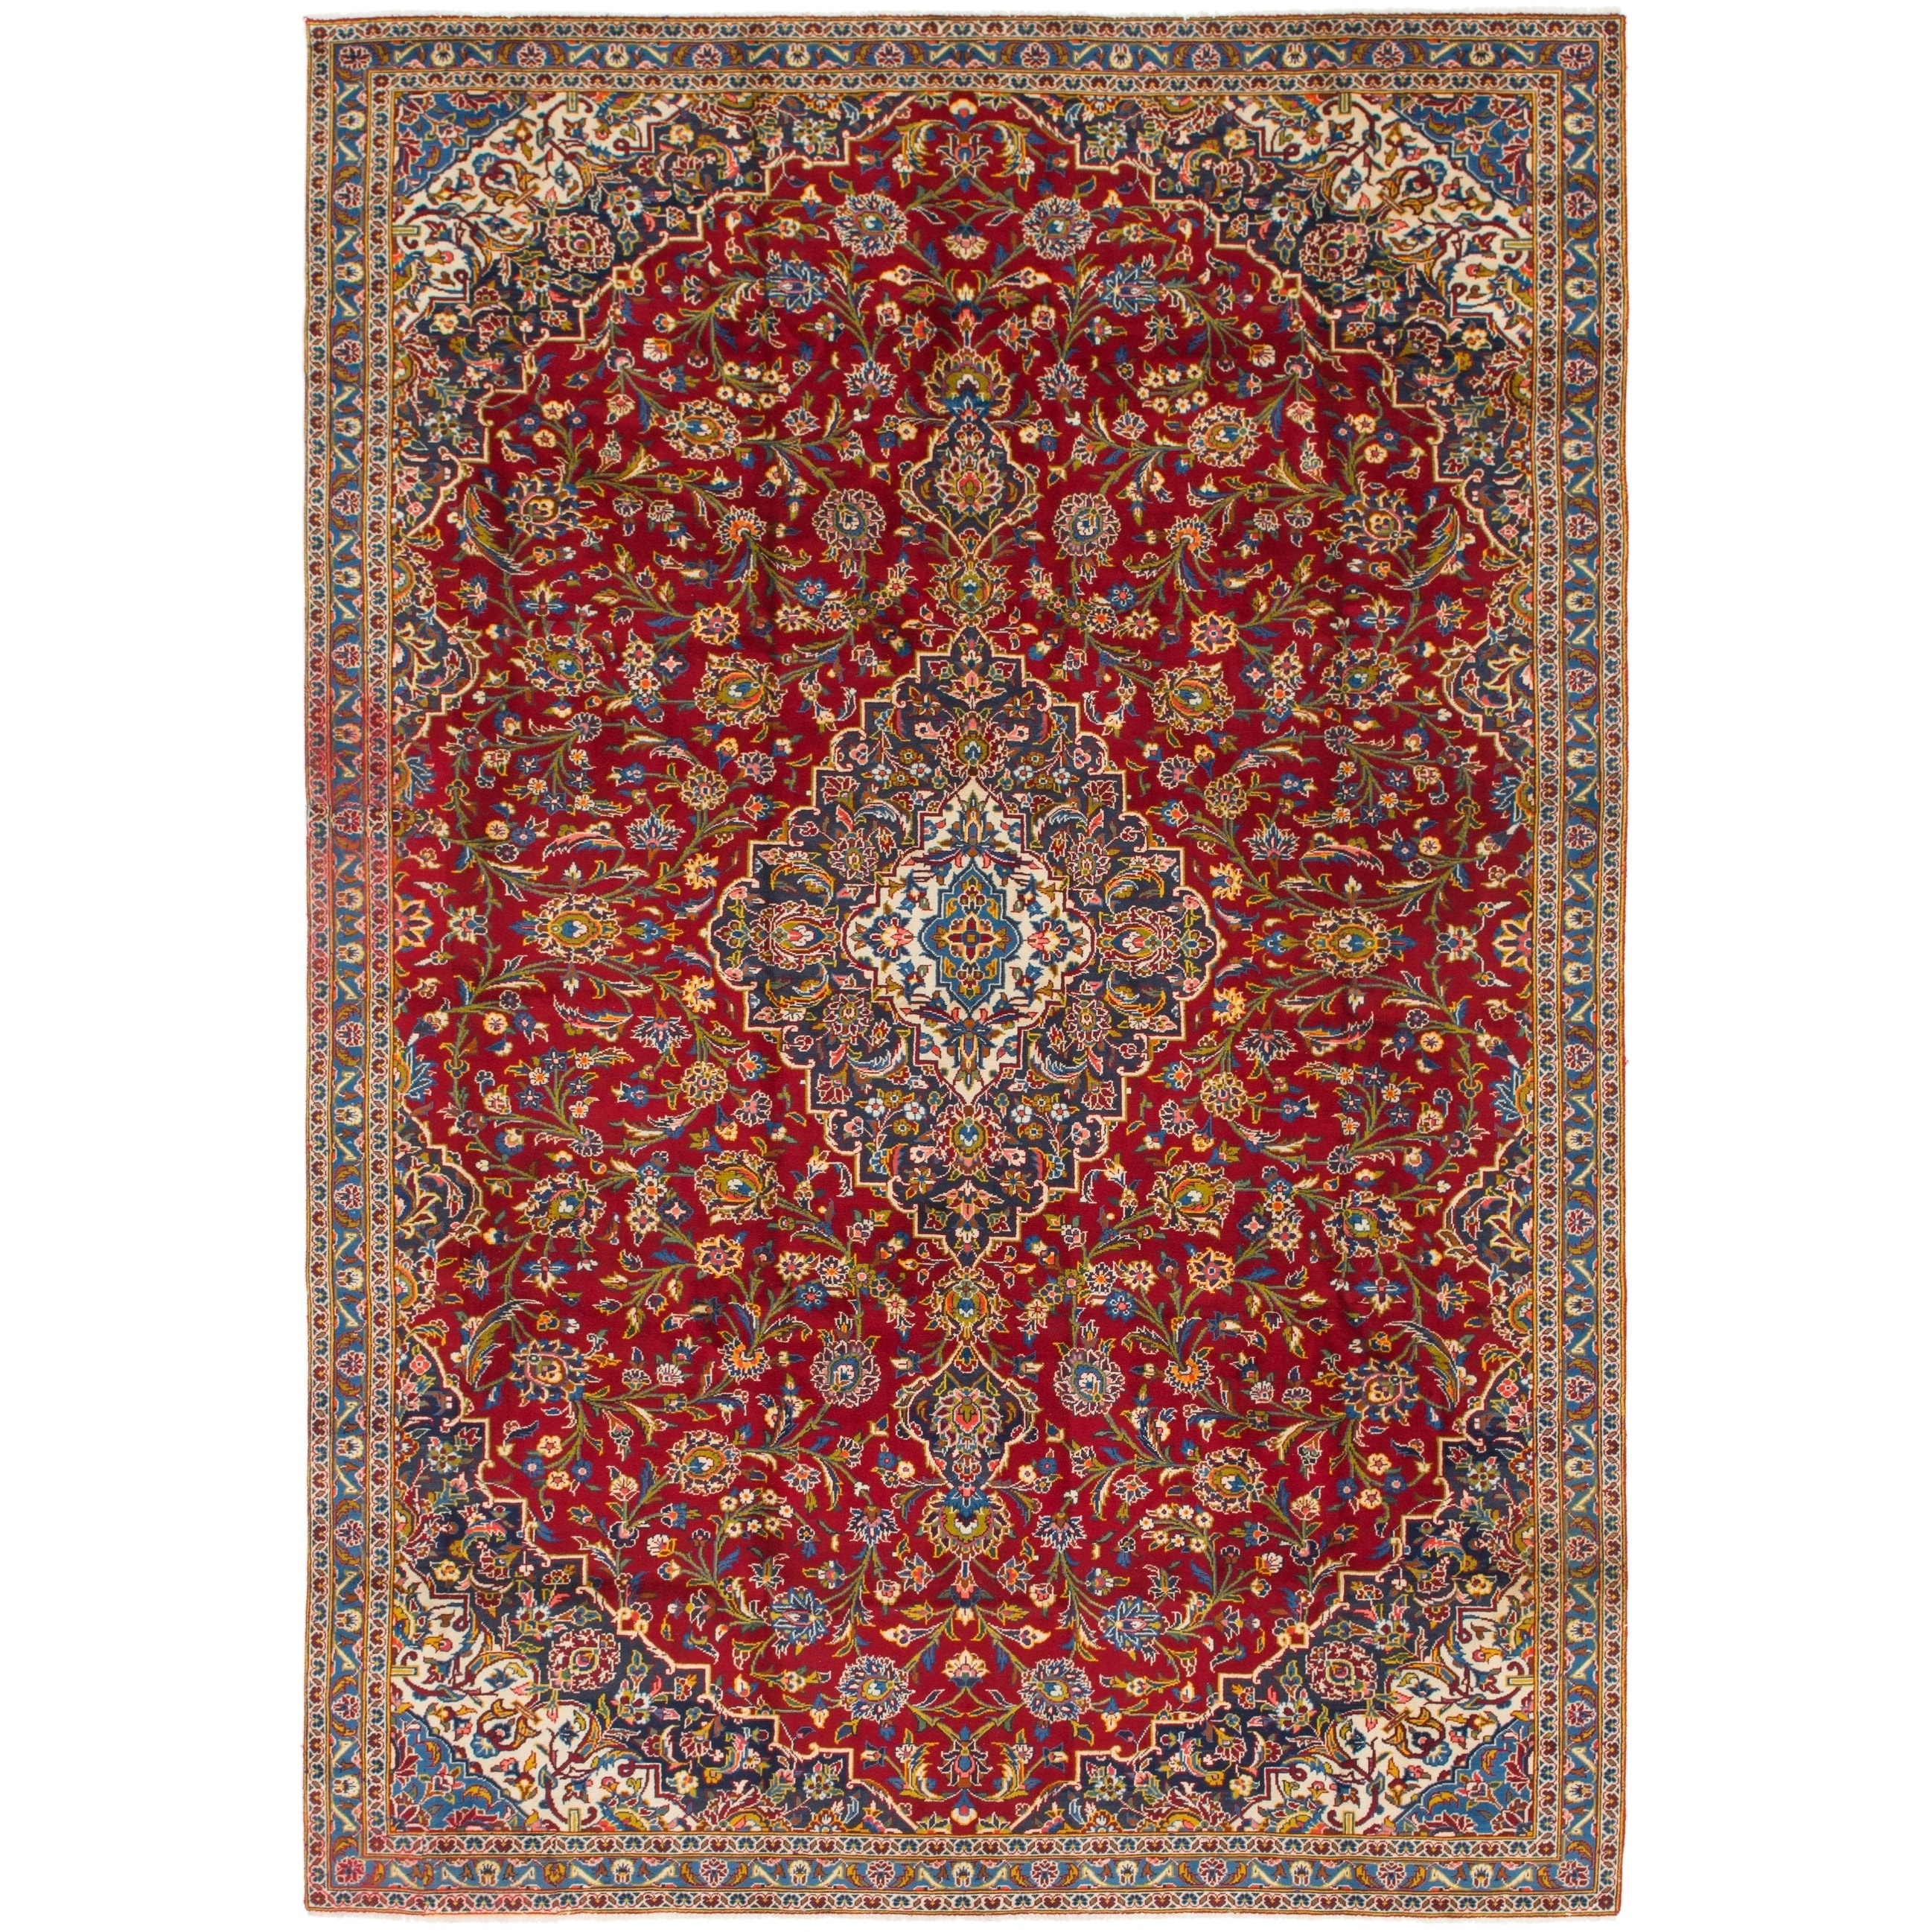 Hand Knotted Kashan Semi Antique Wool Area Rug - 7 5 x 11 (Red - 7 5 x 11)